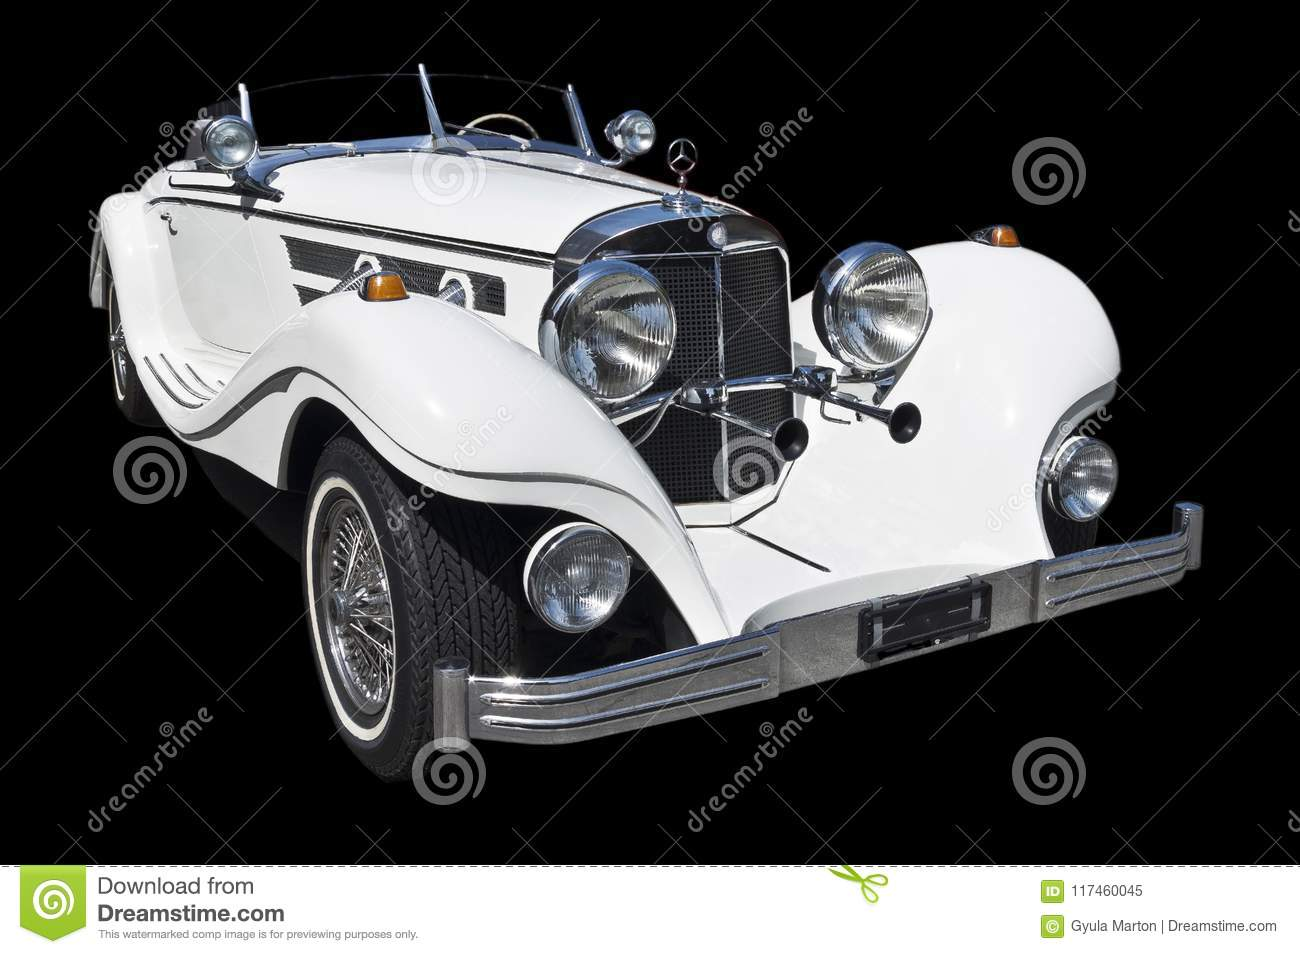 1934 Mercedes roadster cutout